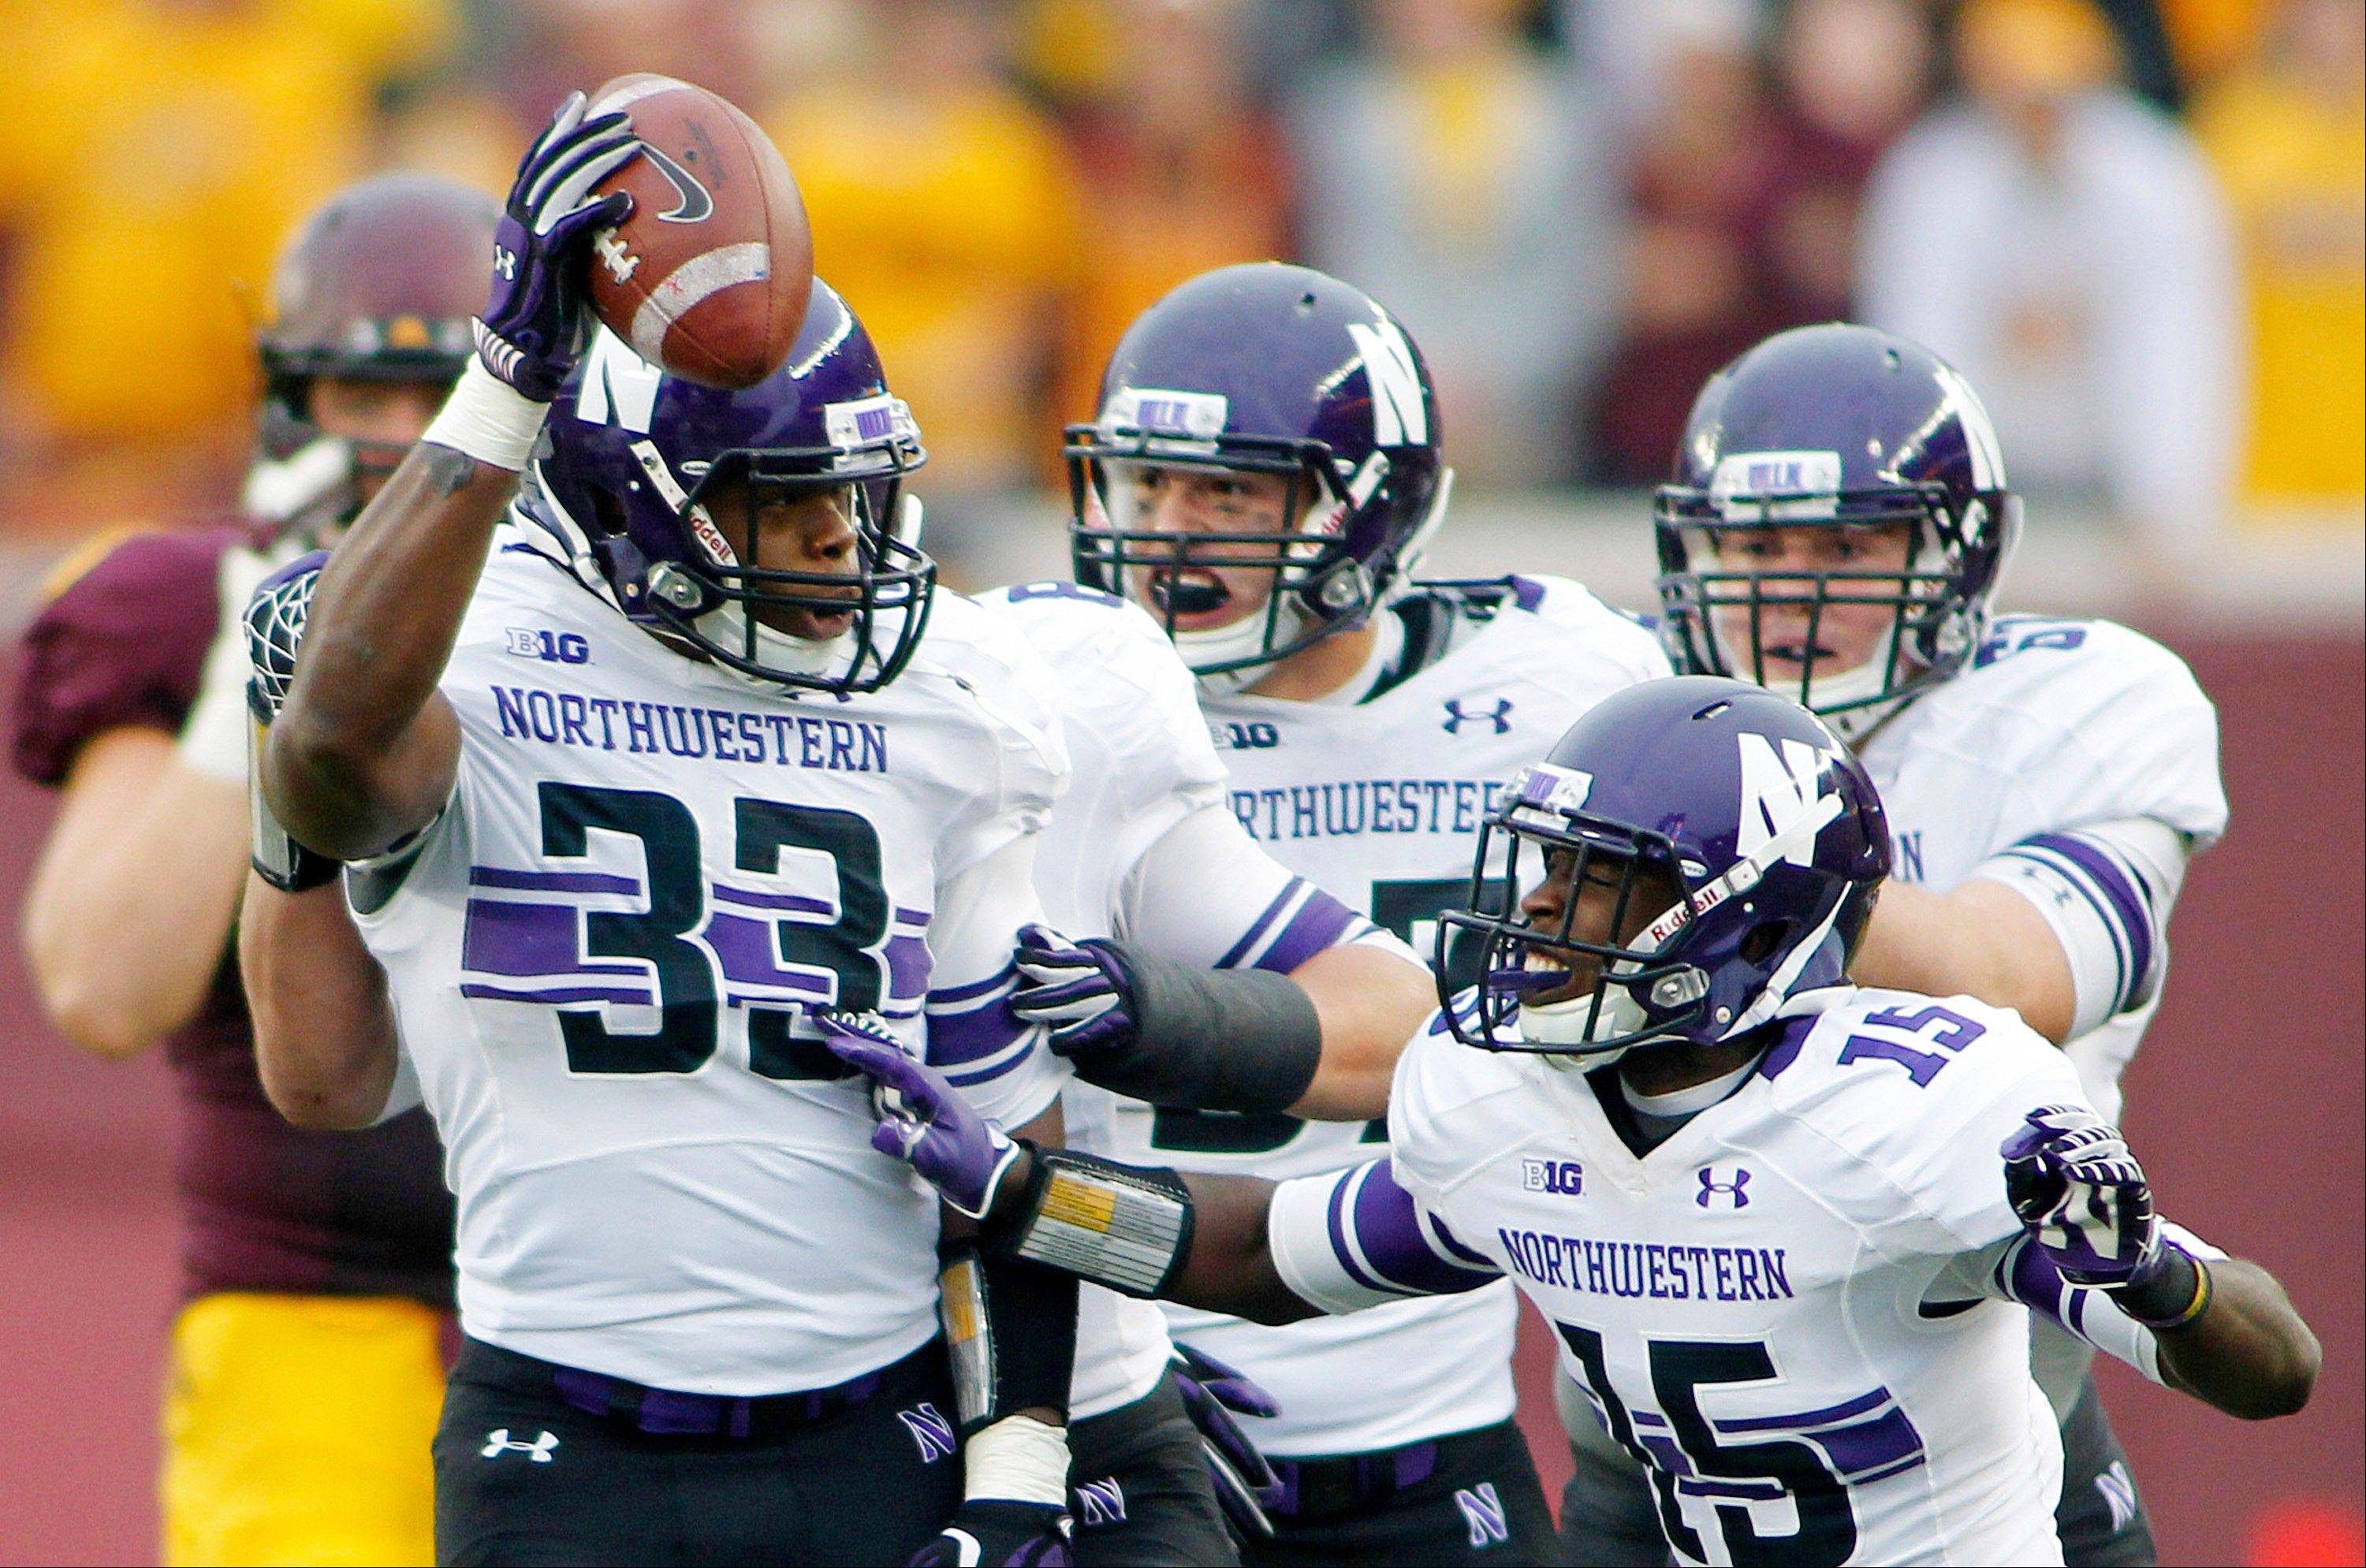 Northwestern linebacker David Nwabuisi celebrates Saturday with teammate Daniel Jones after intercepting a pass in the first half against Minnesota in Minneapolis.